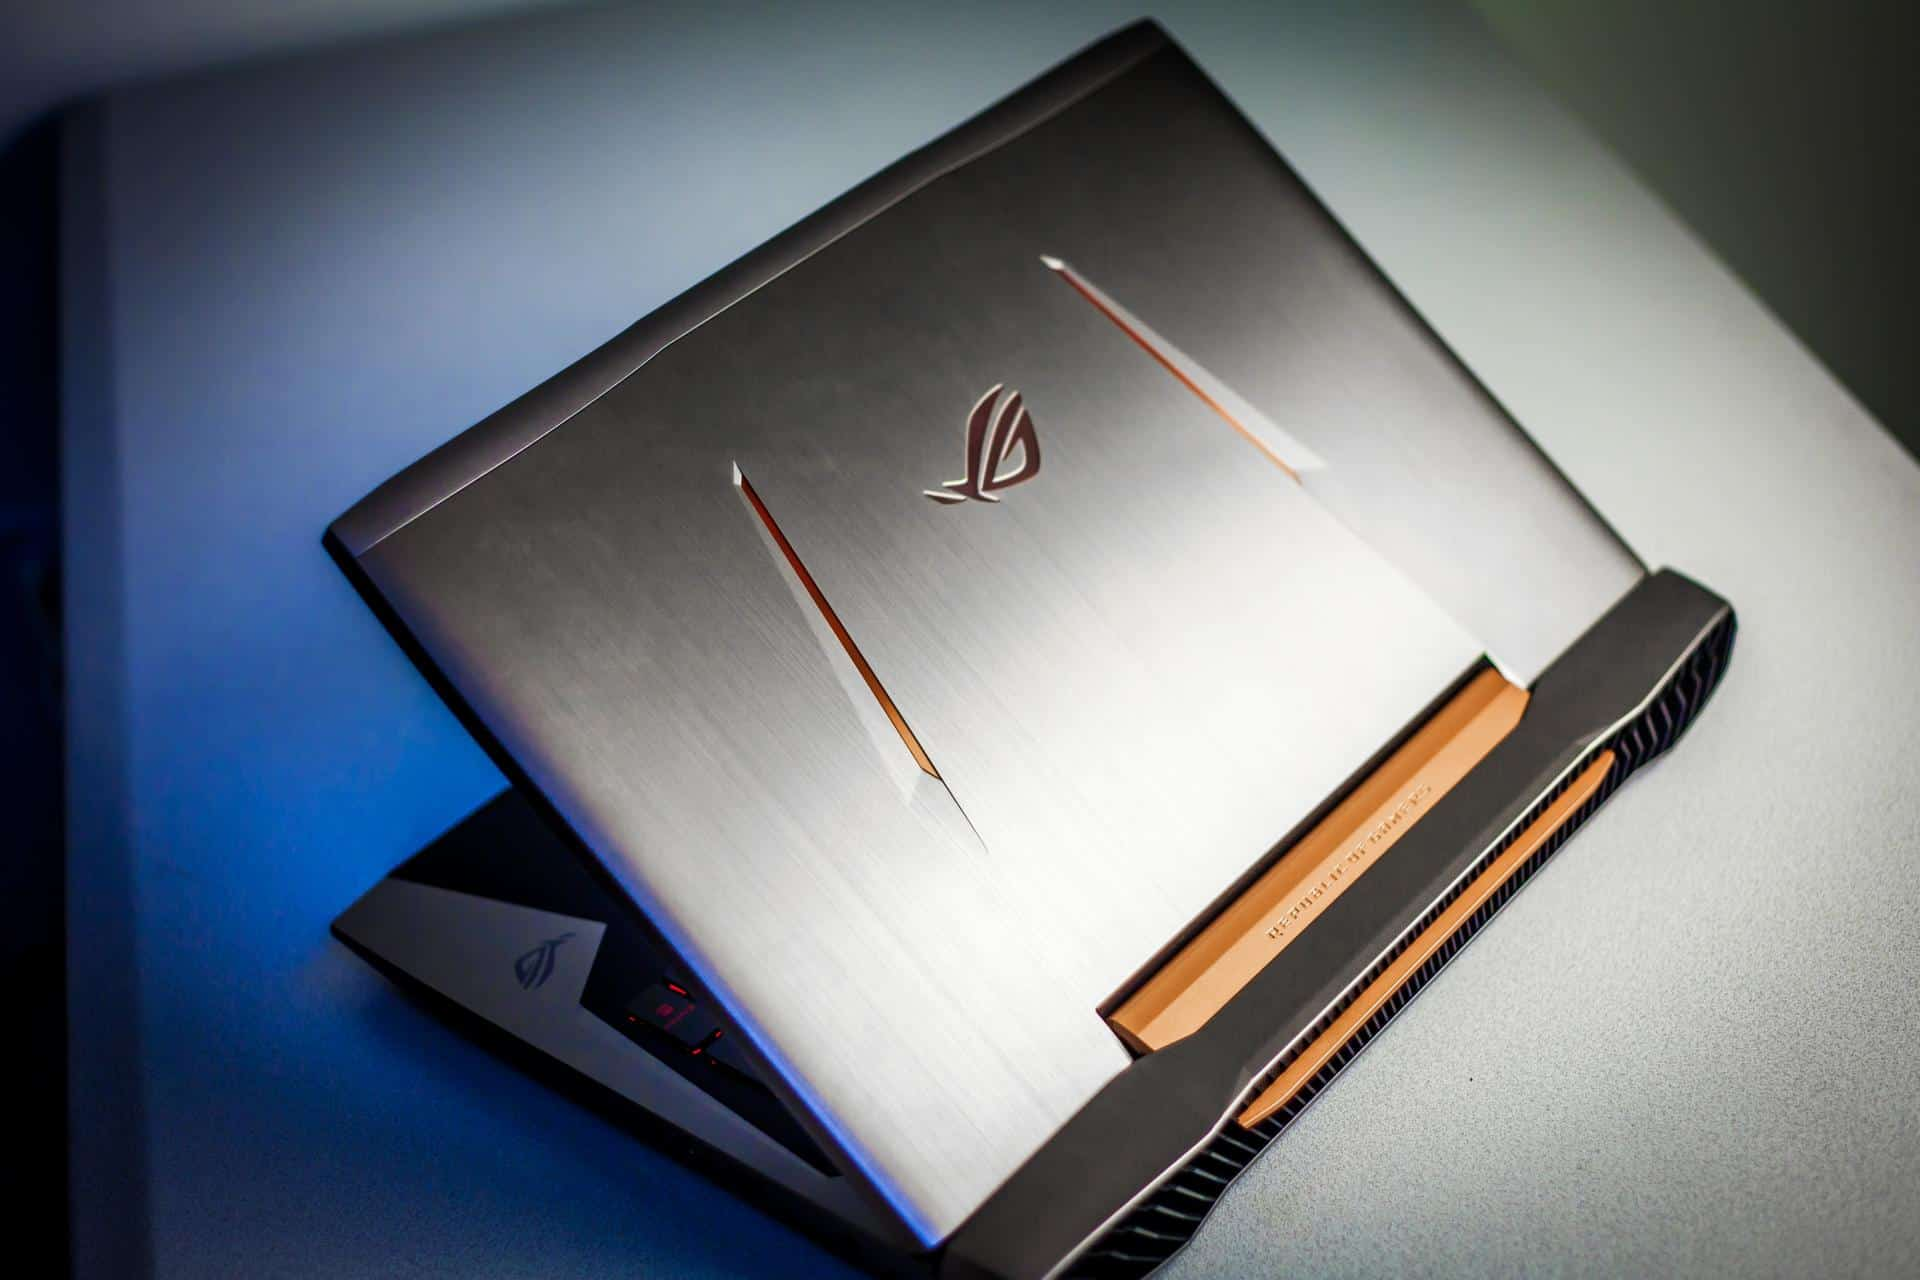 Asus Rog 17.3 Gaming Laptop i7 32gb GTX 1070oc Edition Review